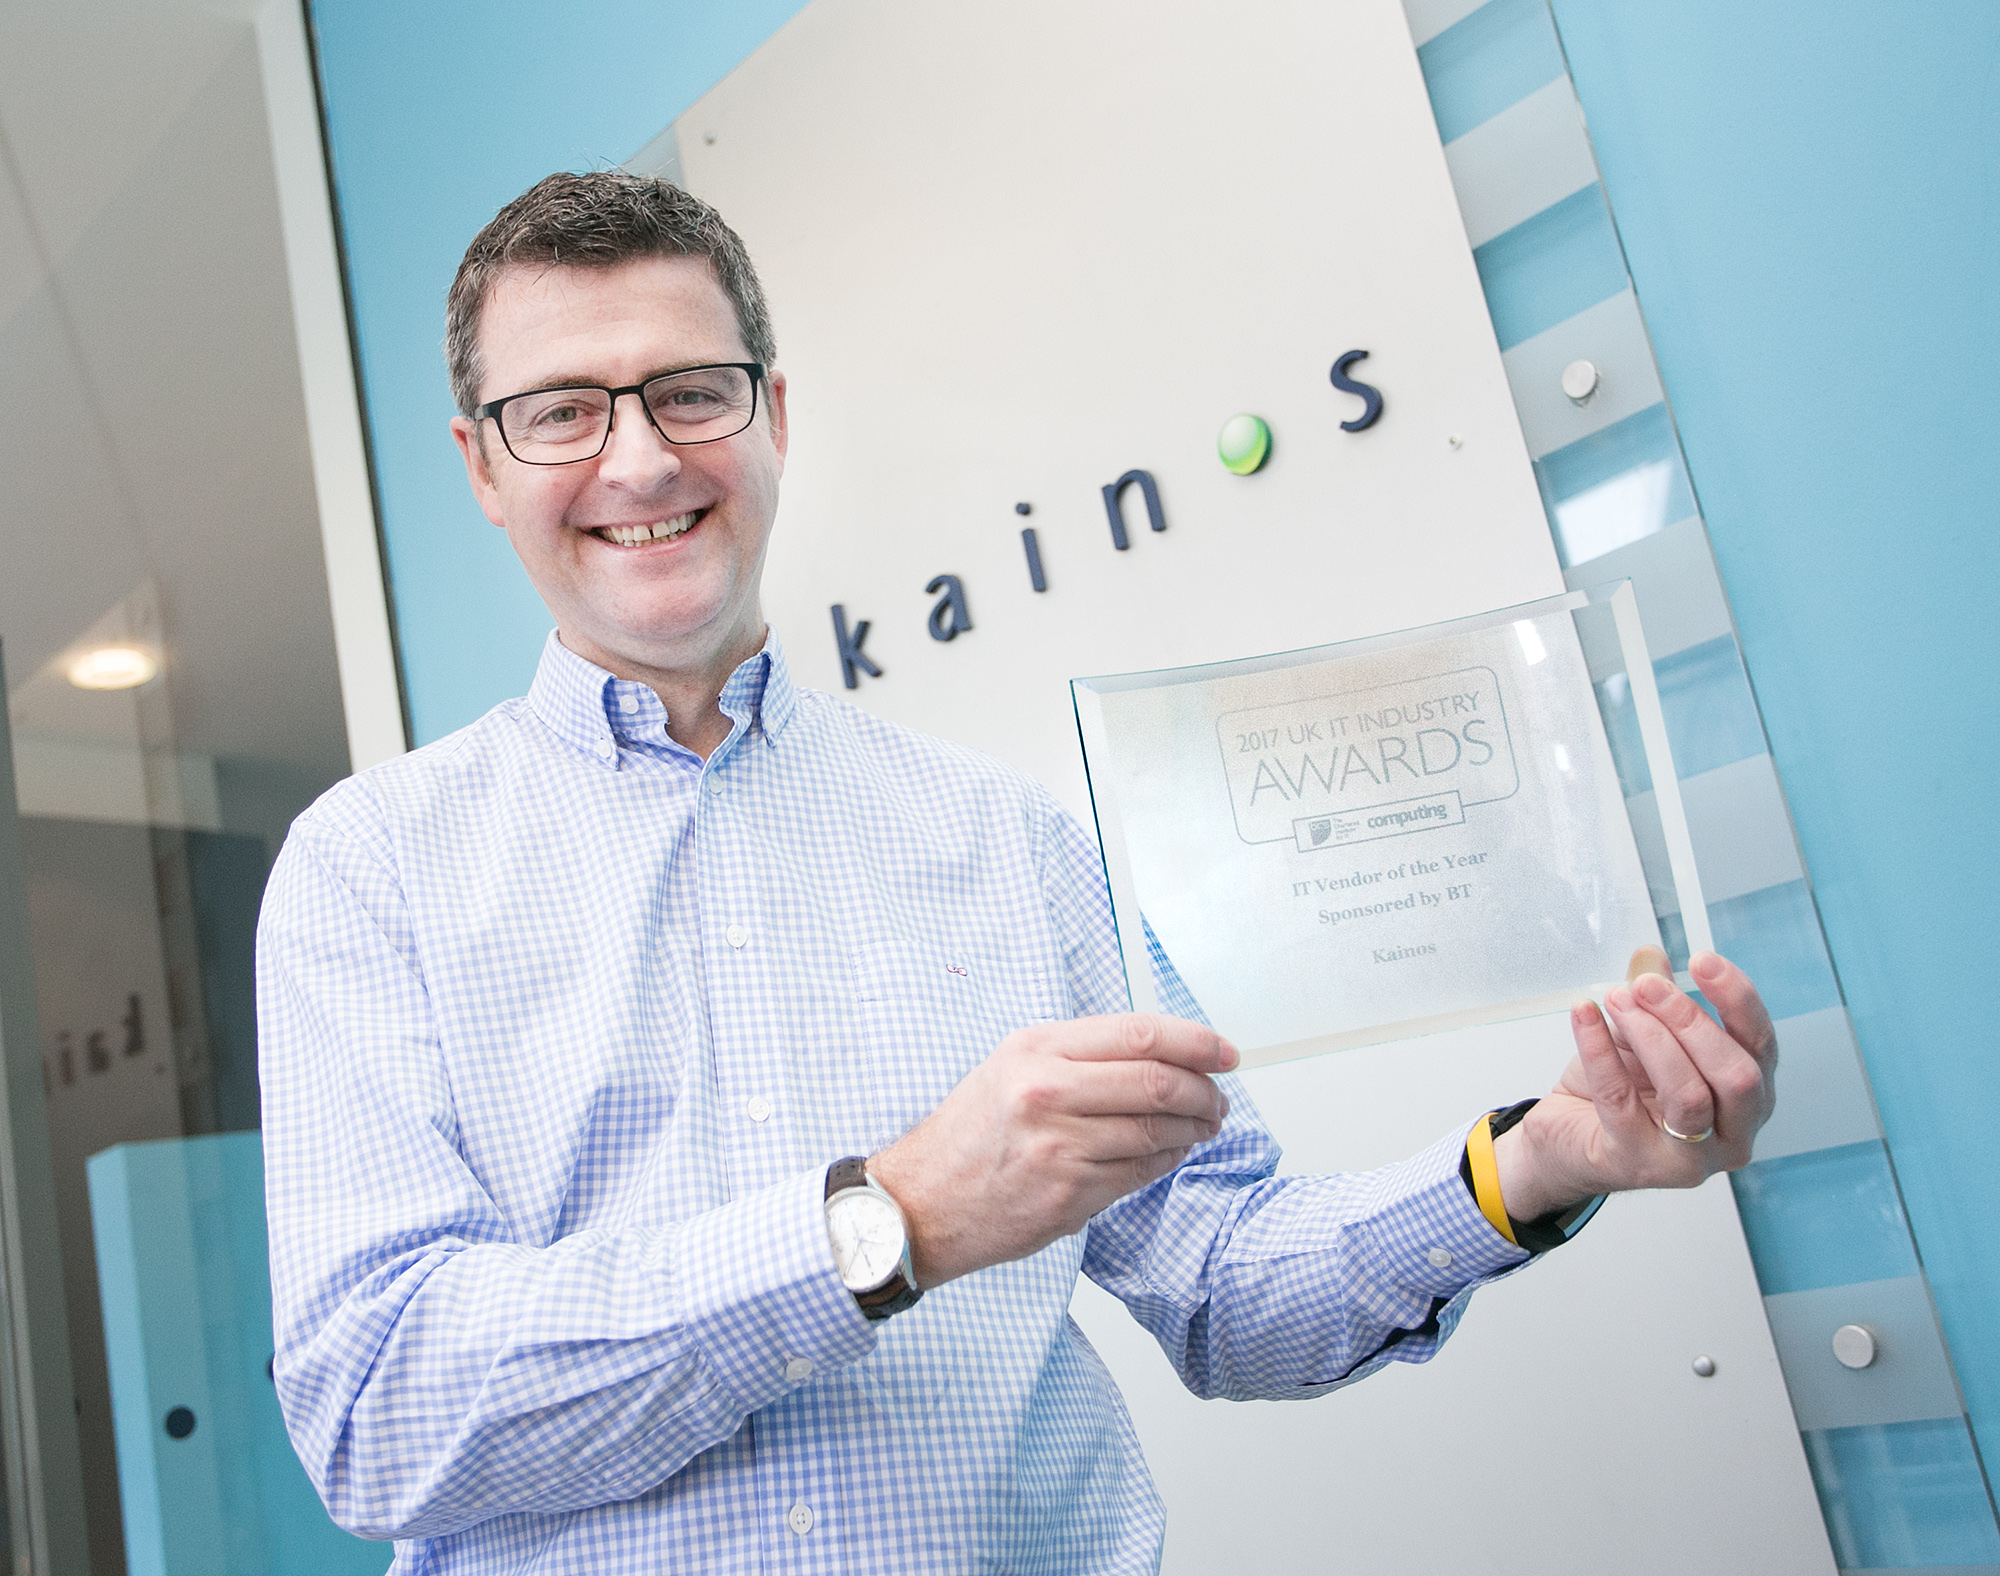 Kainos named UK's 'Vendor of the Year' at top industry awards